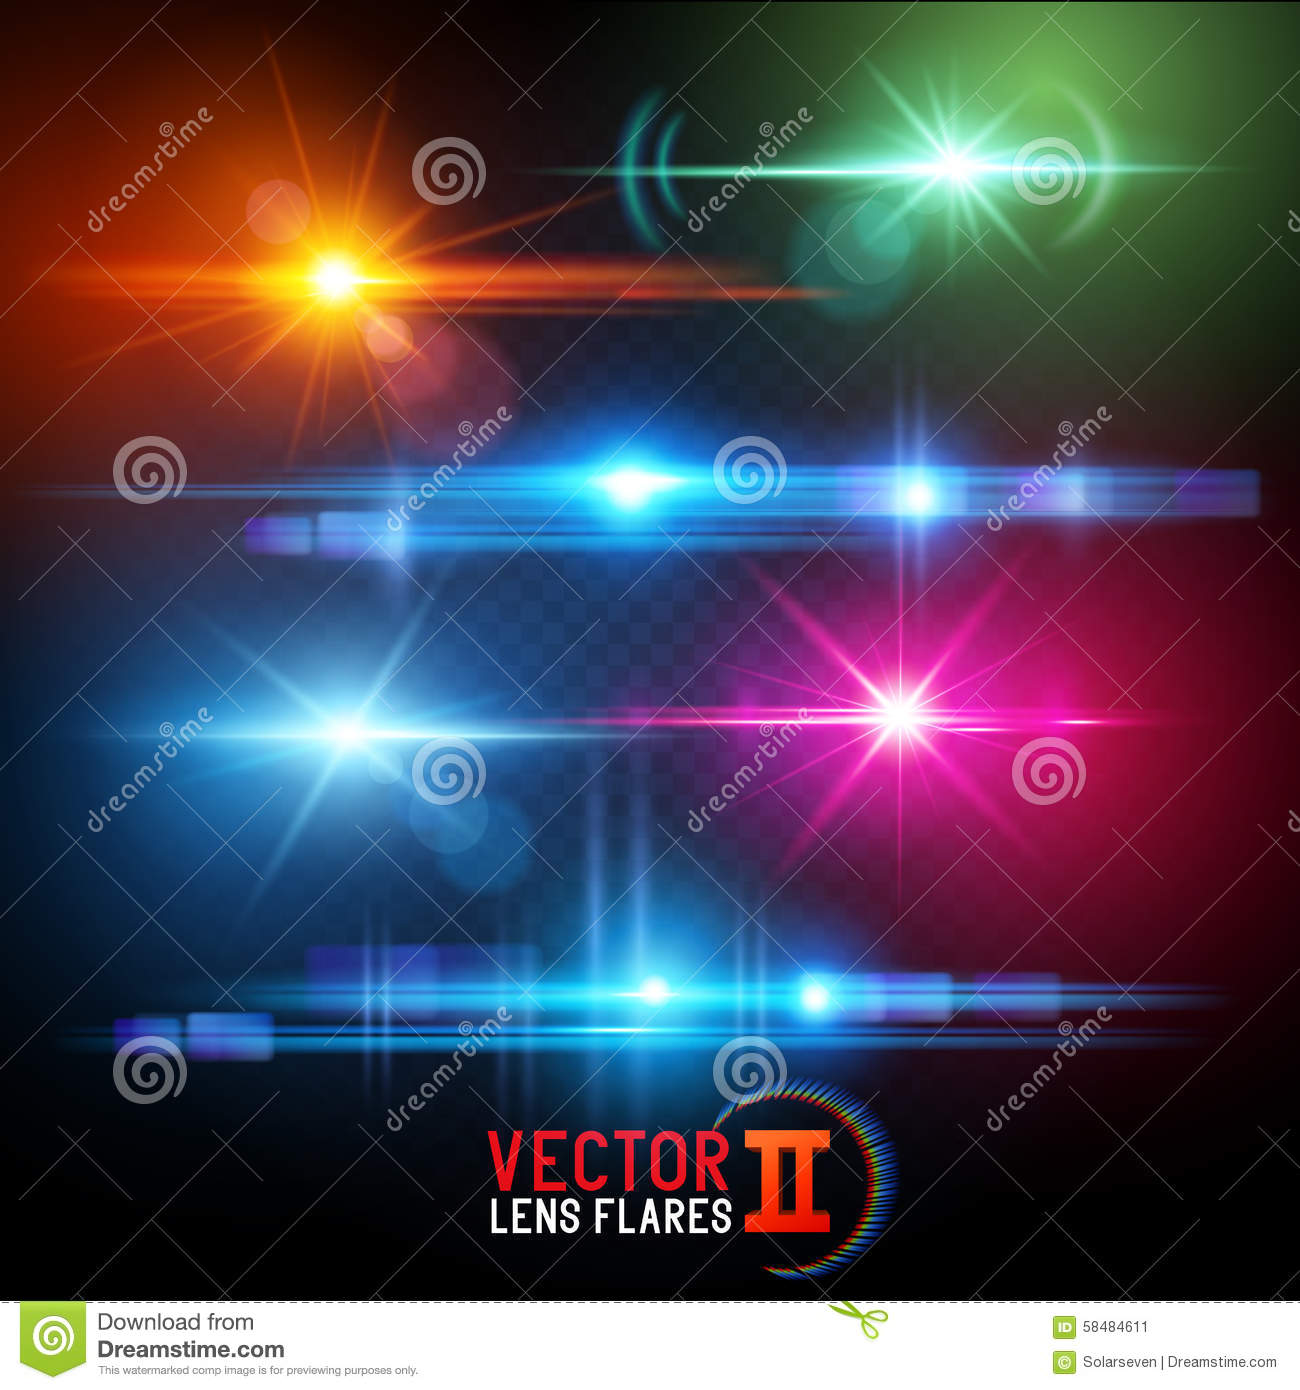 Vector Lens Flare Effects